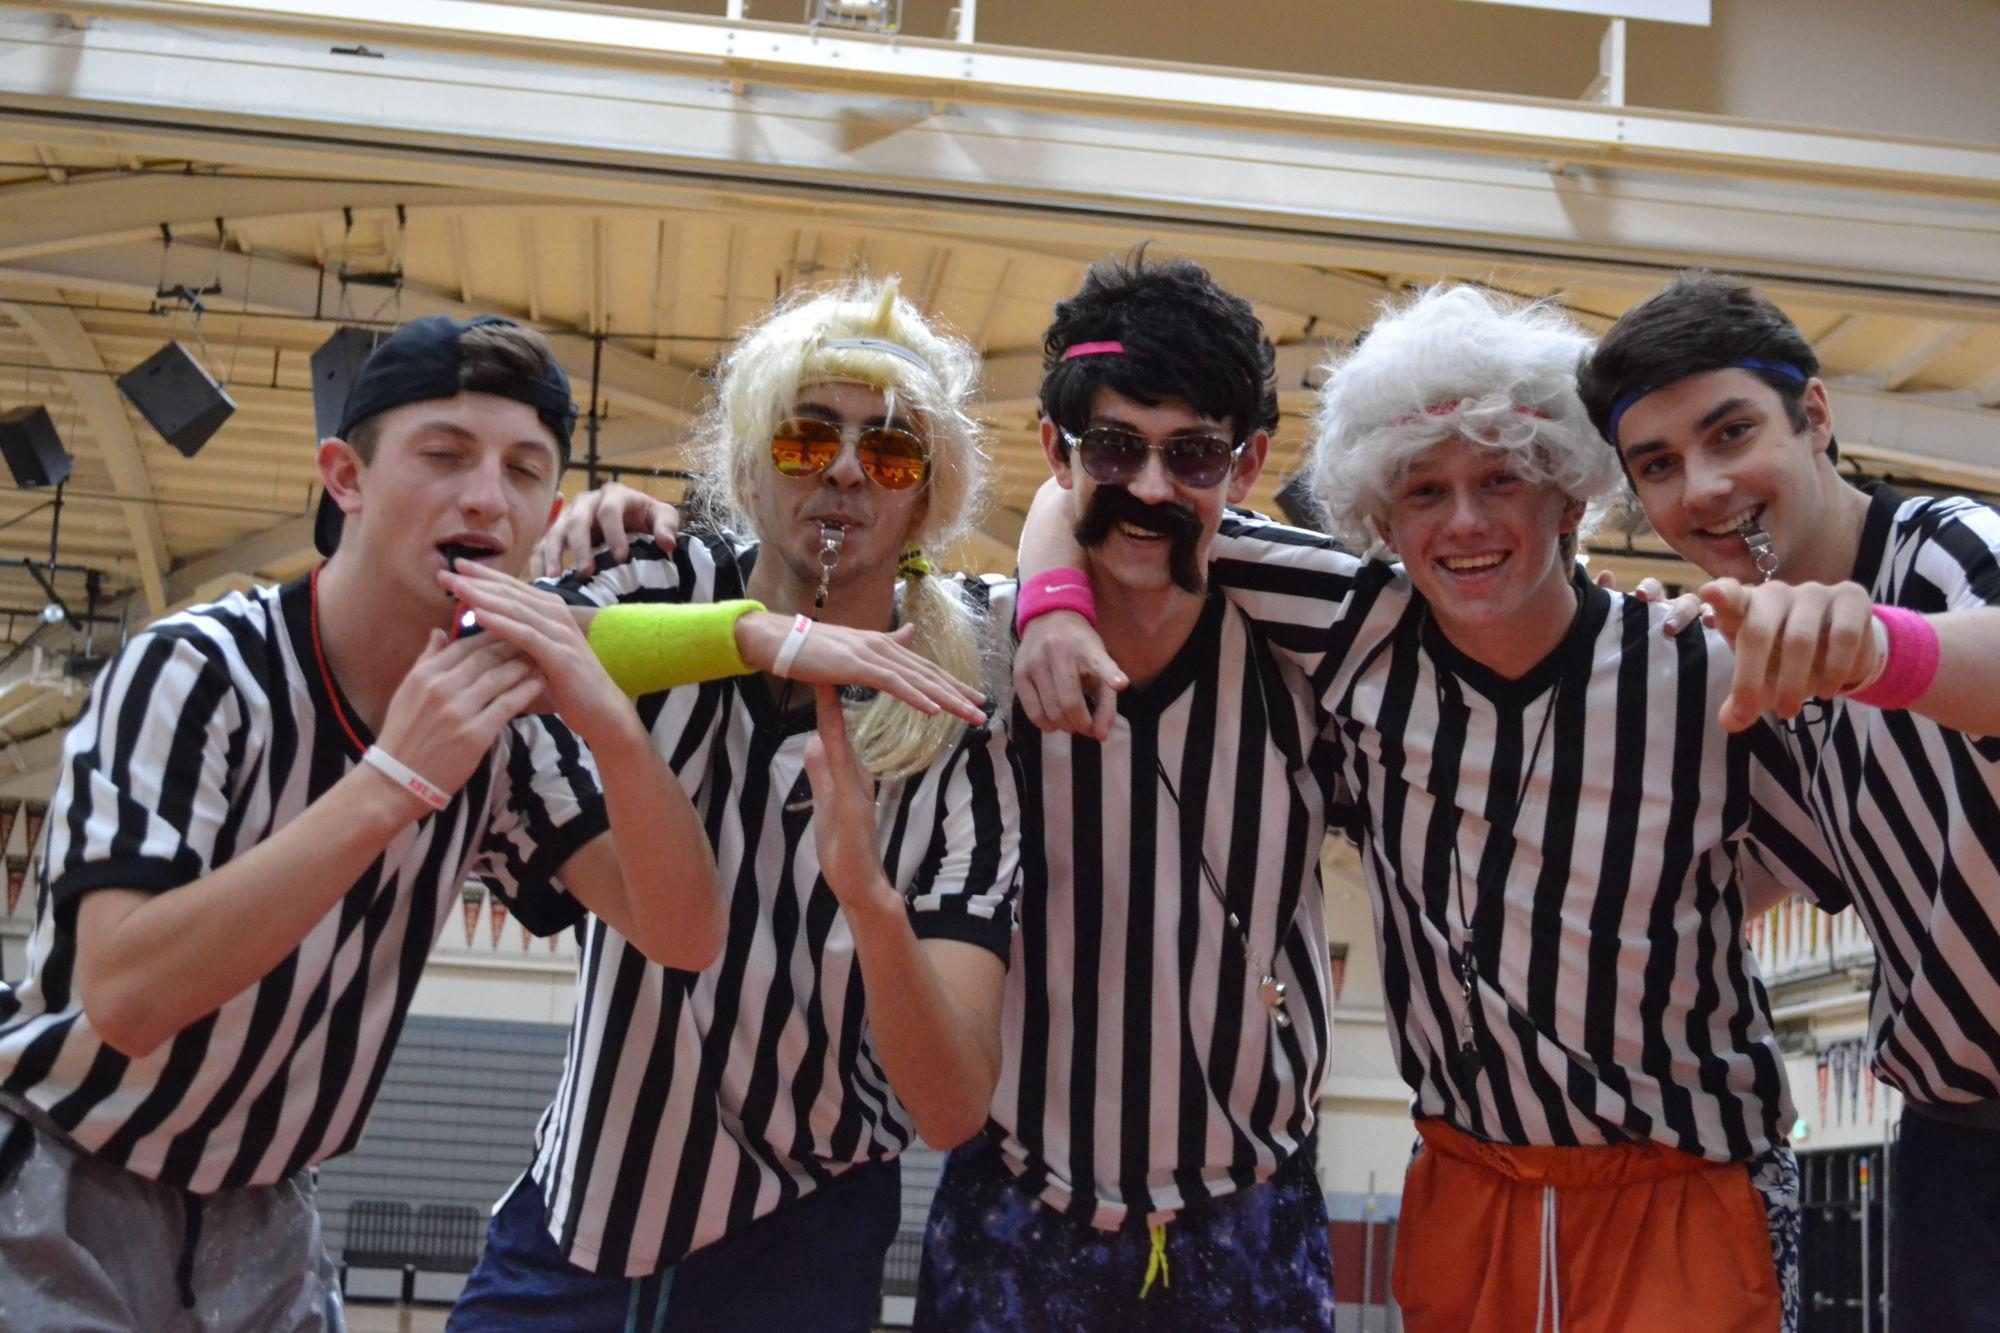 6th annual dodgeball tournament hypes students